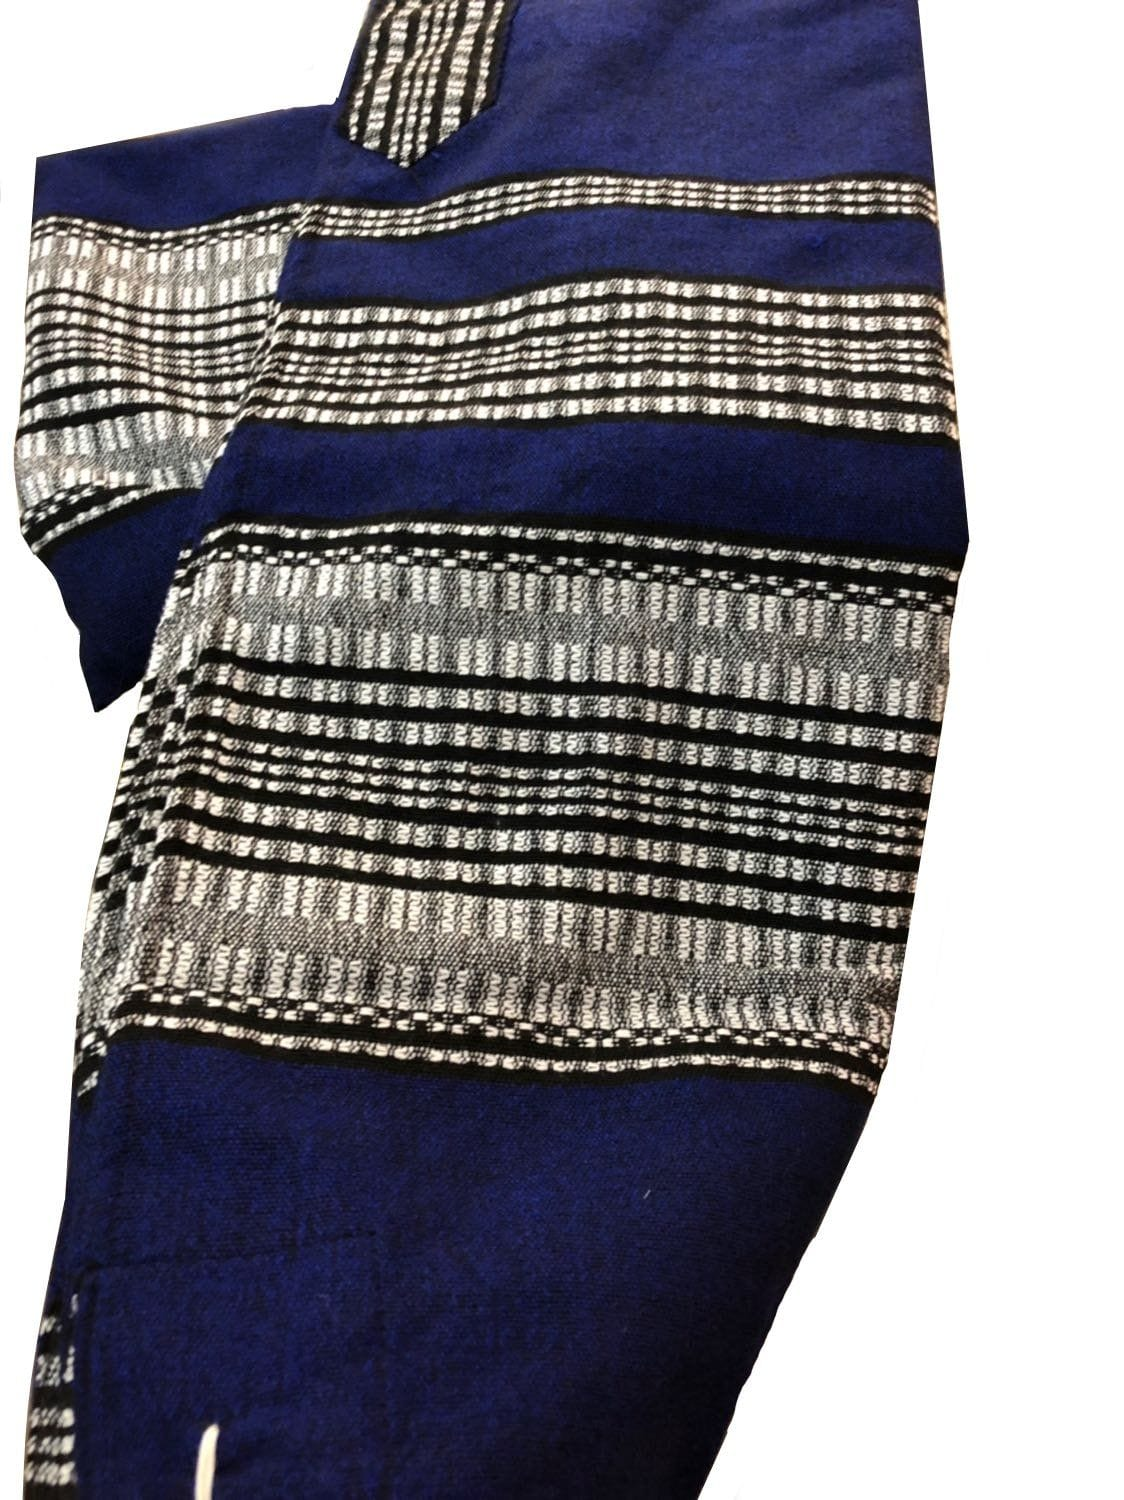 Wool Tallit - Blue with Grey & Black Scale Stripes Gabrieli Wool Tallit